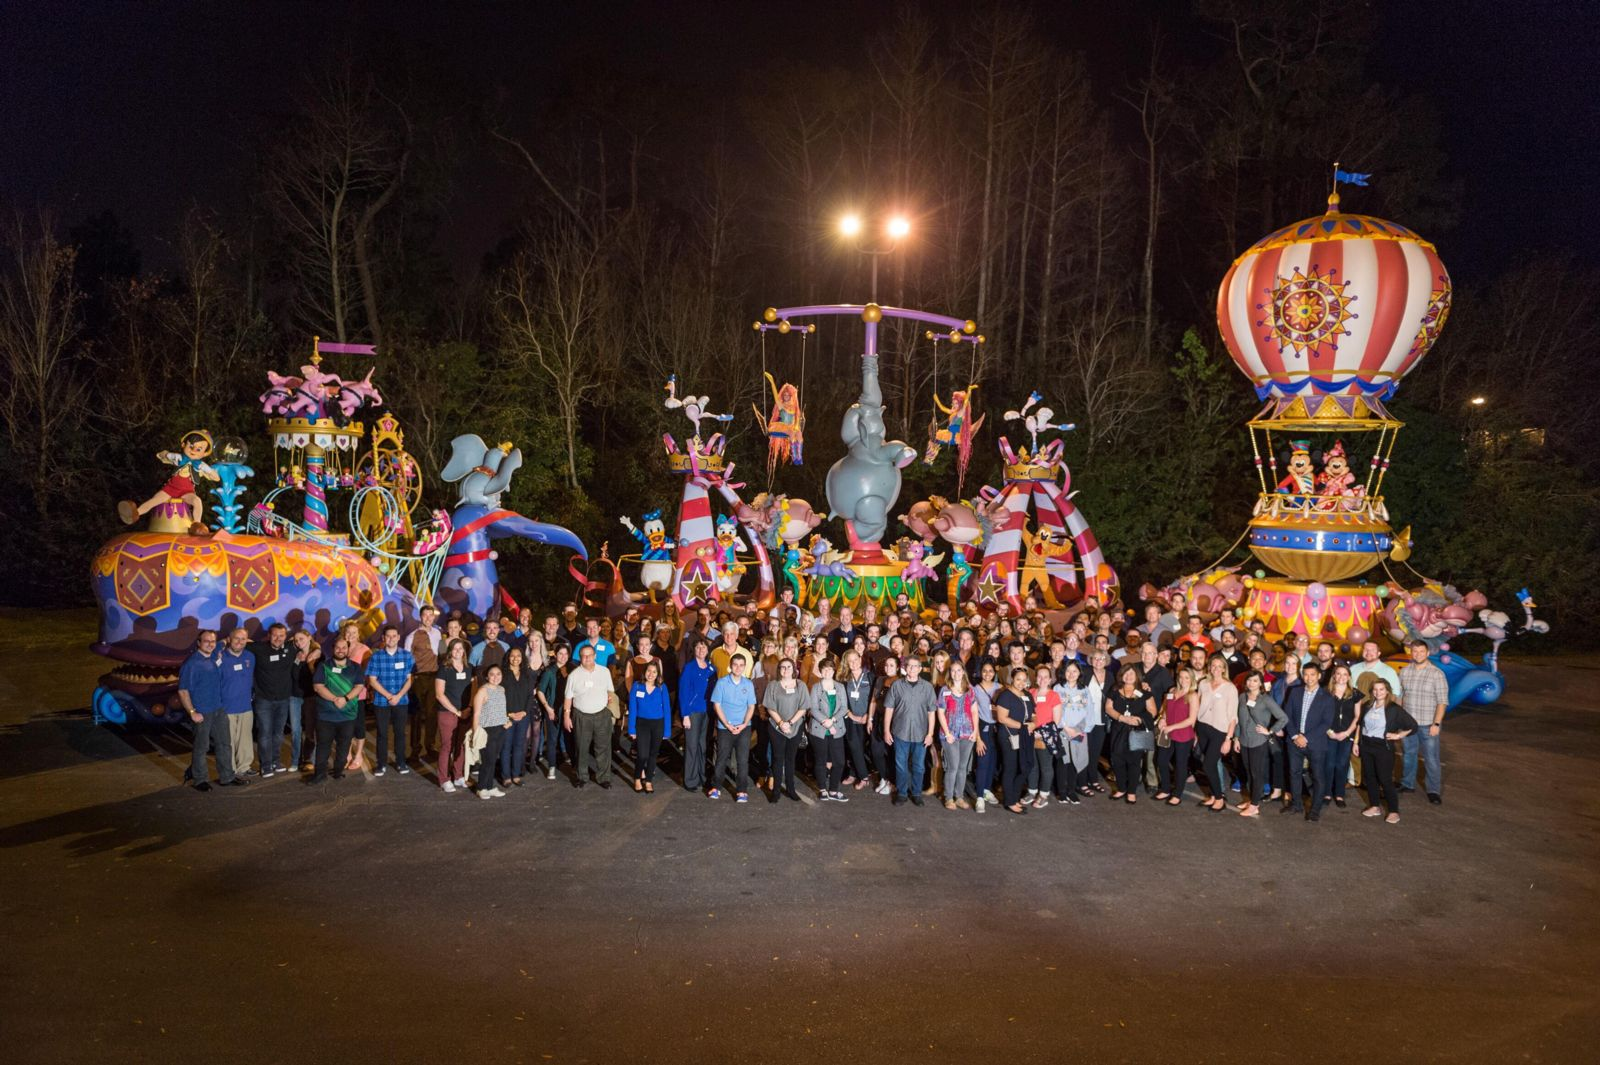 TEA members enjoy an evening with Disney Parks Live Entertainment in Orlando, Feb 2018